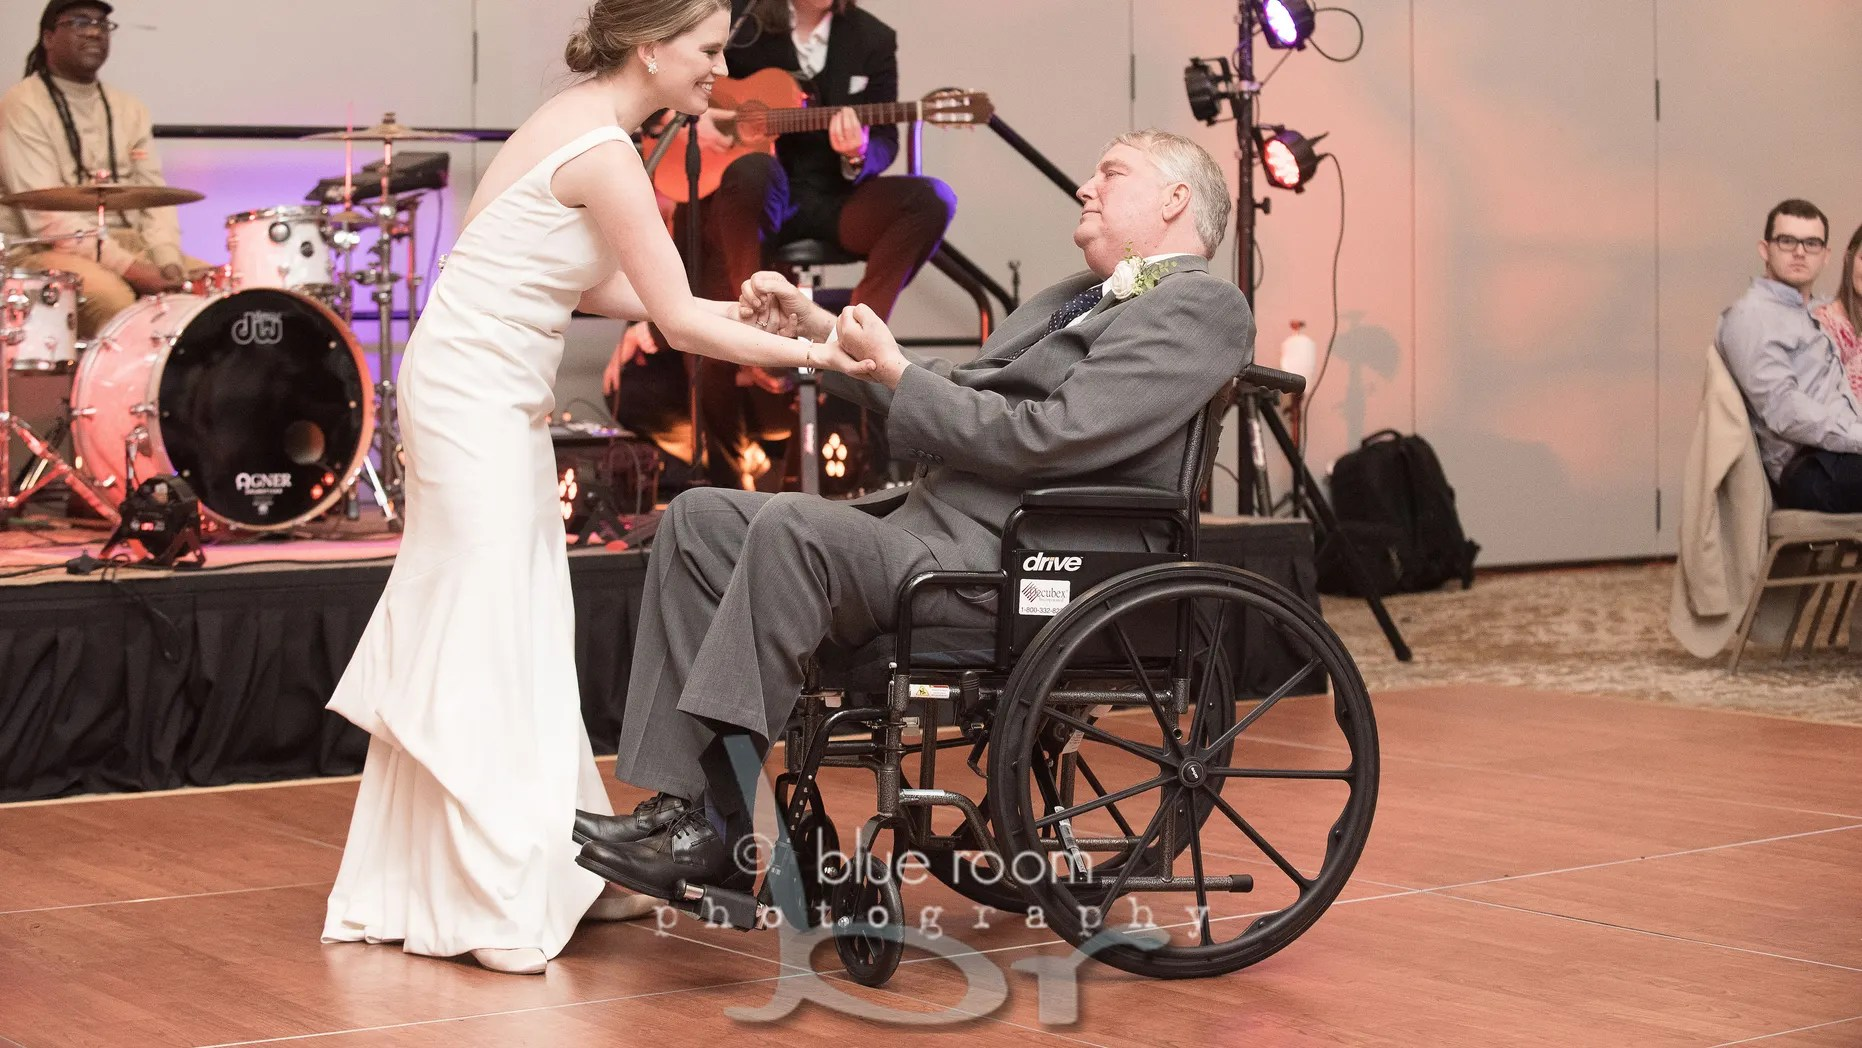 VIRAL VIDEO: Bride Dances With Her Terminally ill Dad In Traditional Father-Daughter Wedding Dance